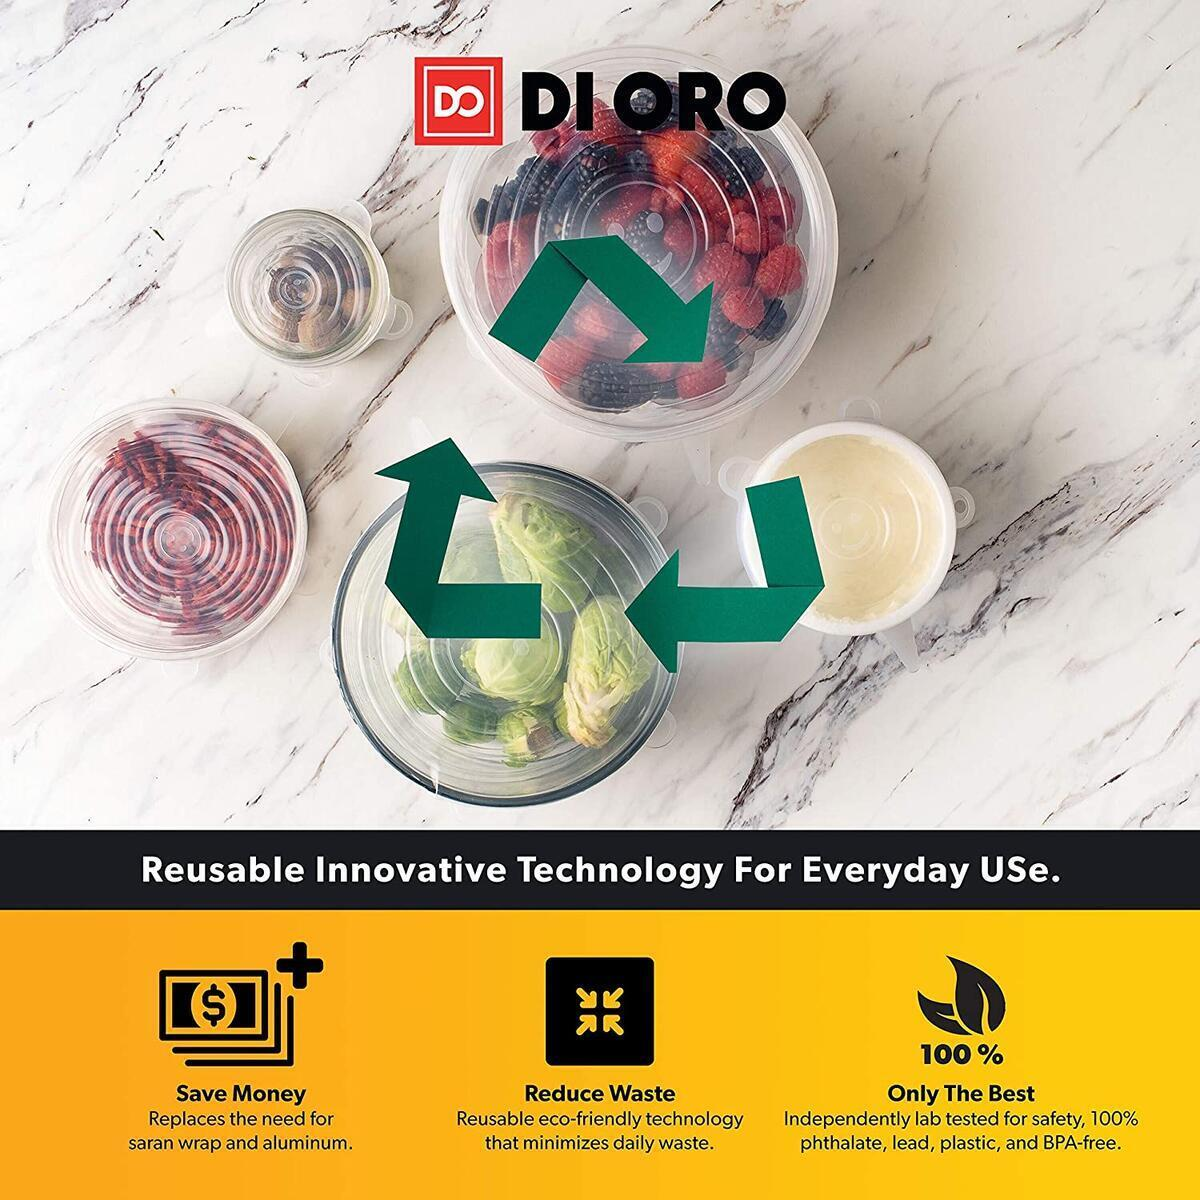 DI ORO Silicone Stretch Lids 14 Pack – Reusable Food Storage Covers for Bowls and Containers – Variety of Sizes, Easy to Clean, and Dishwasher Safe